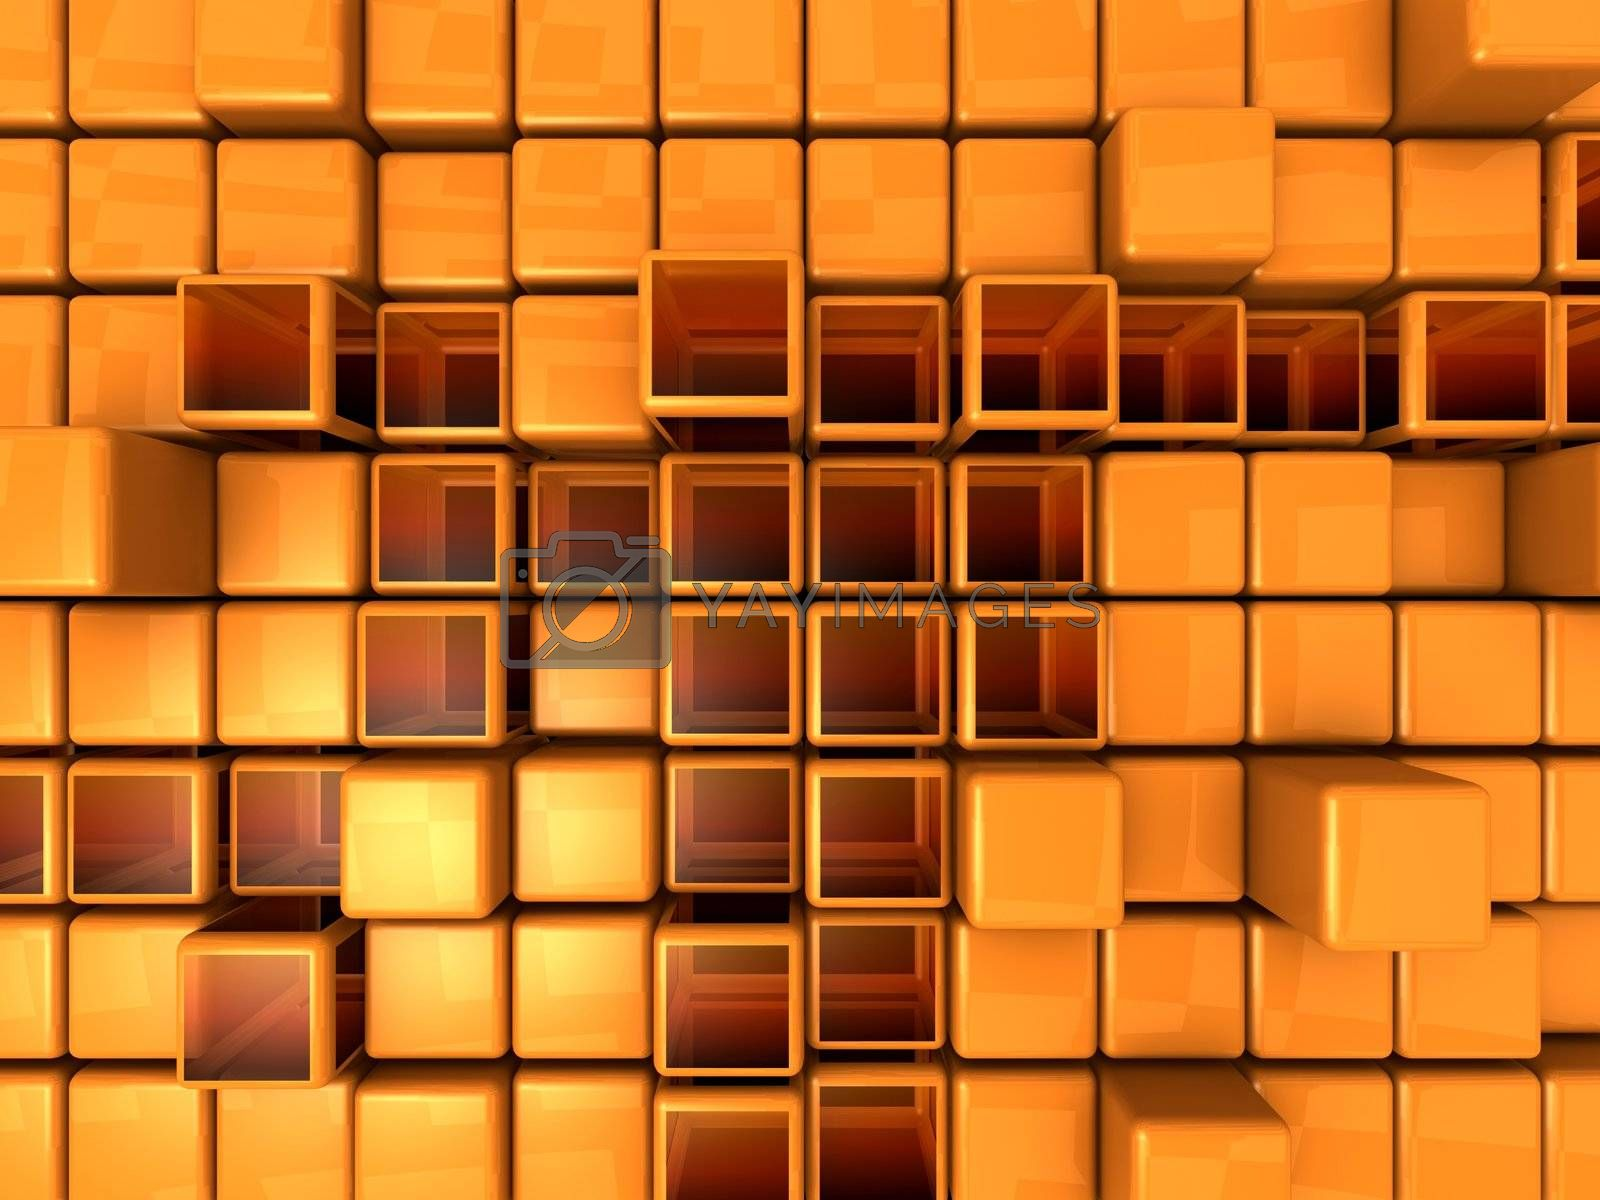 Abstract Background - Cubes by 3pod